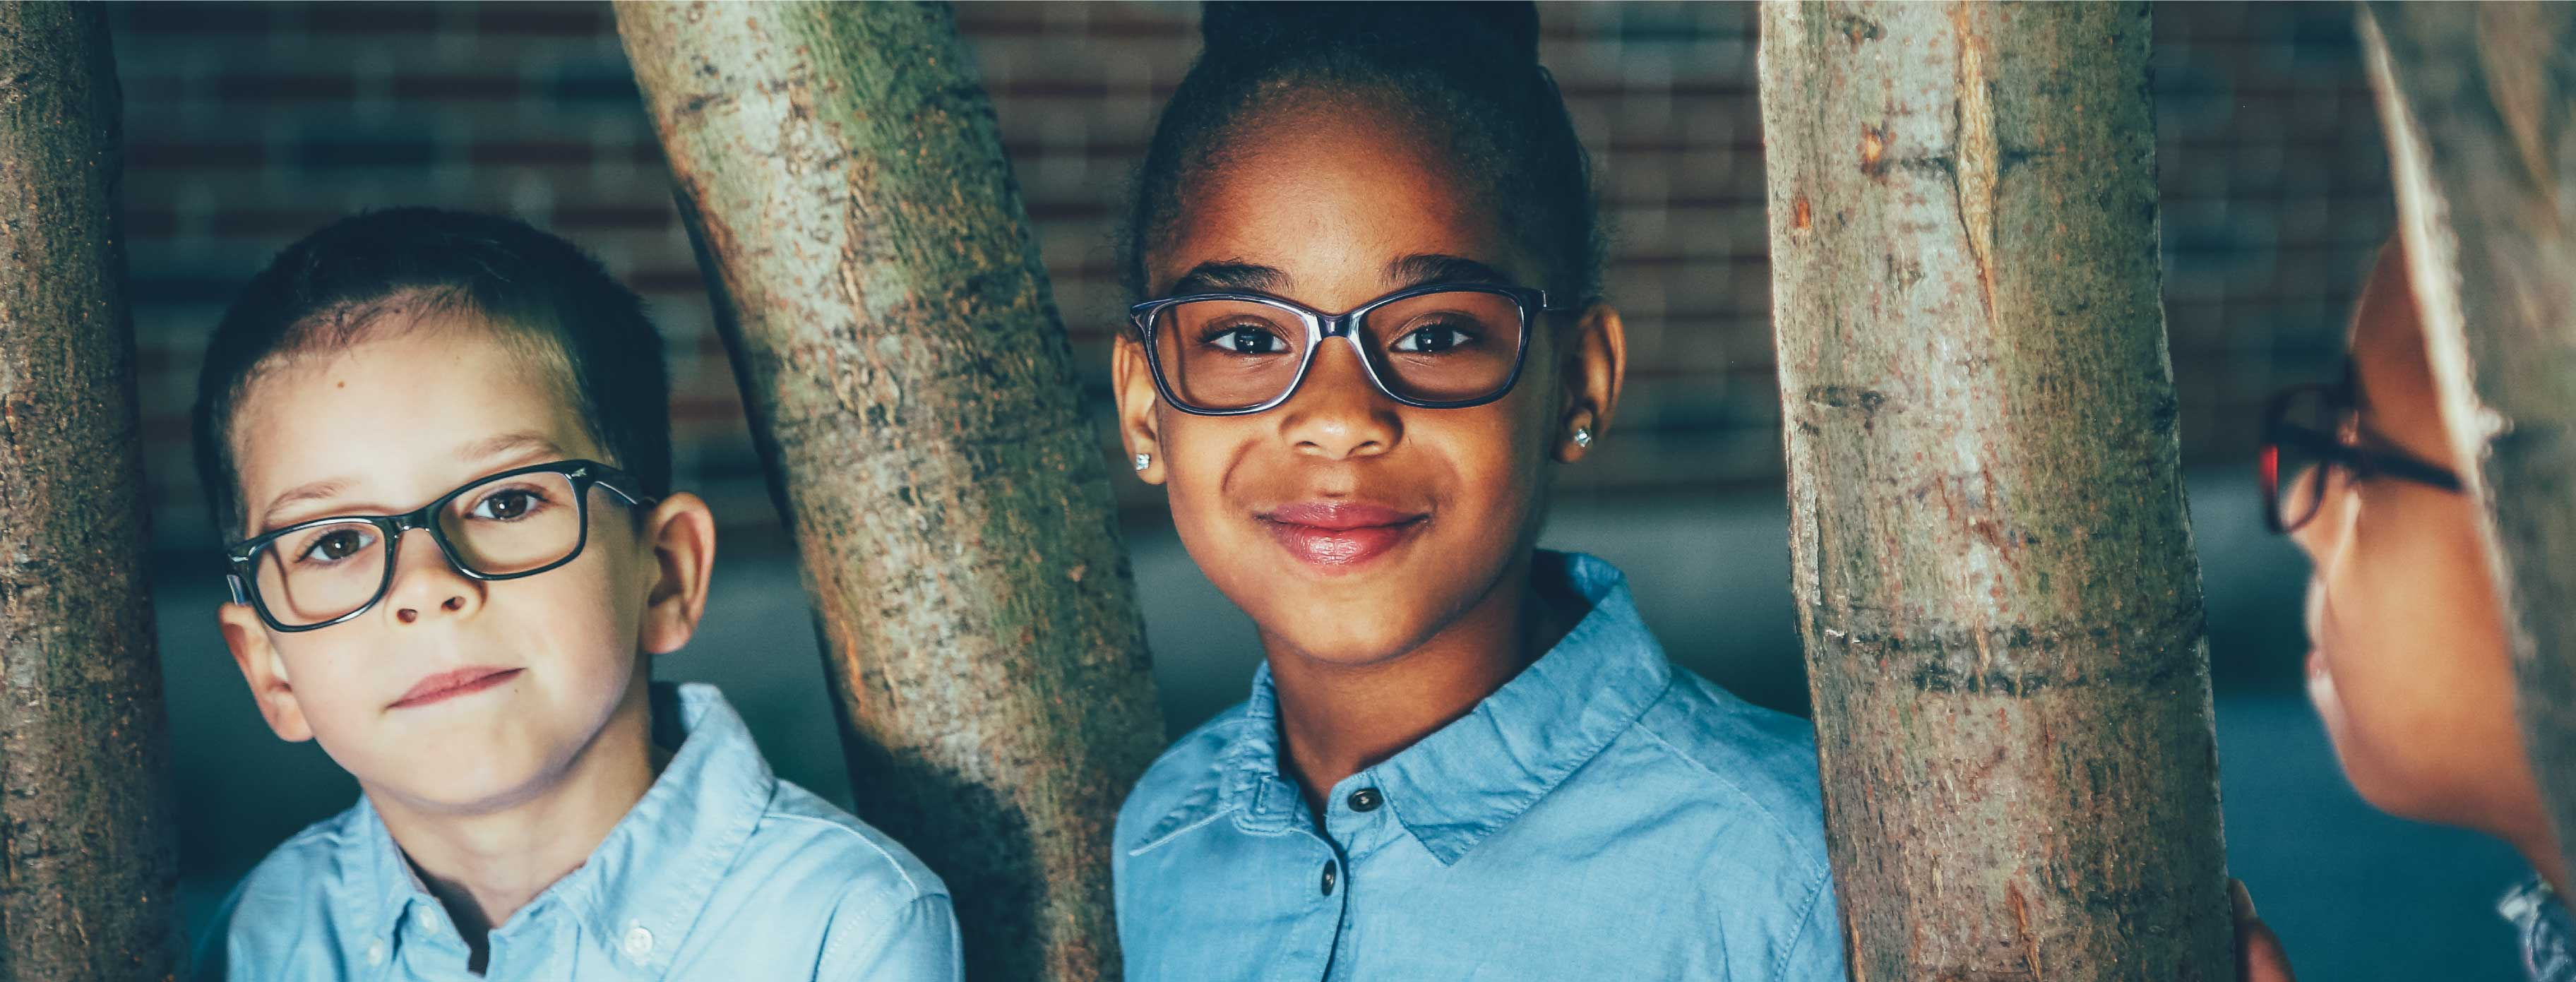 Children are playing outdoors, both of them are smiling and wearing glasses